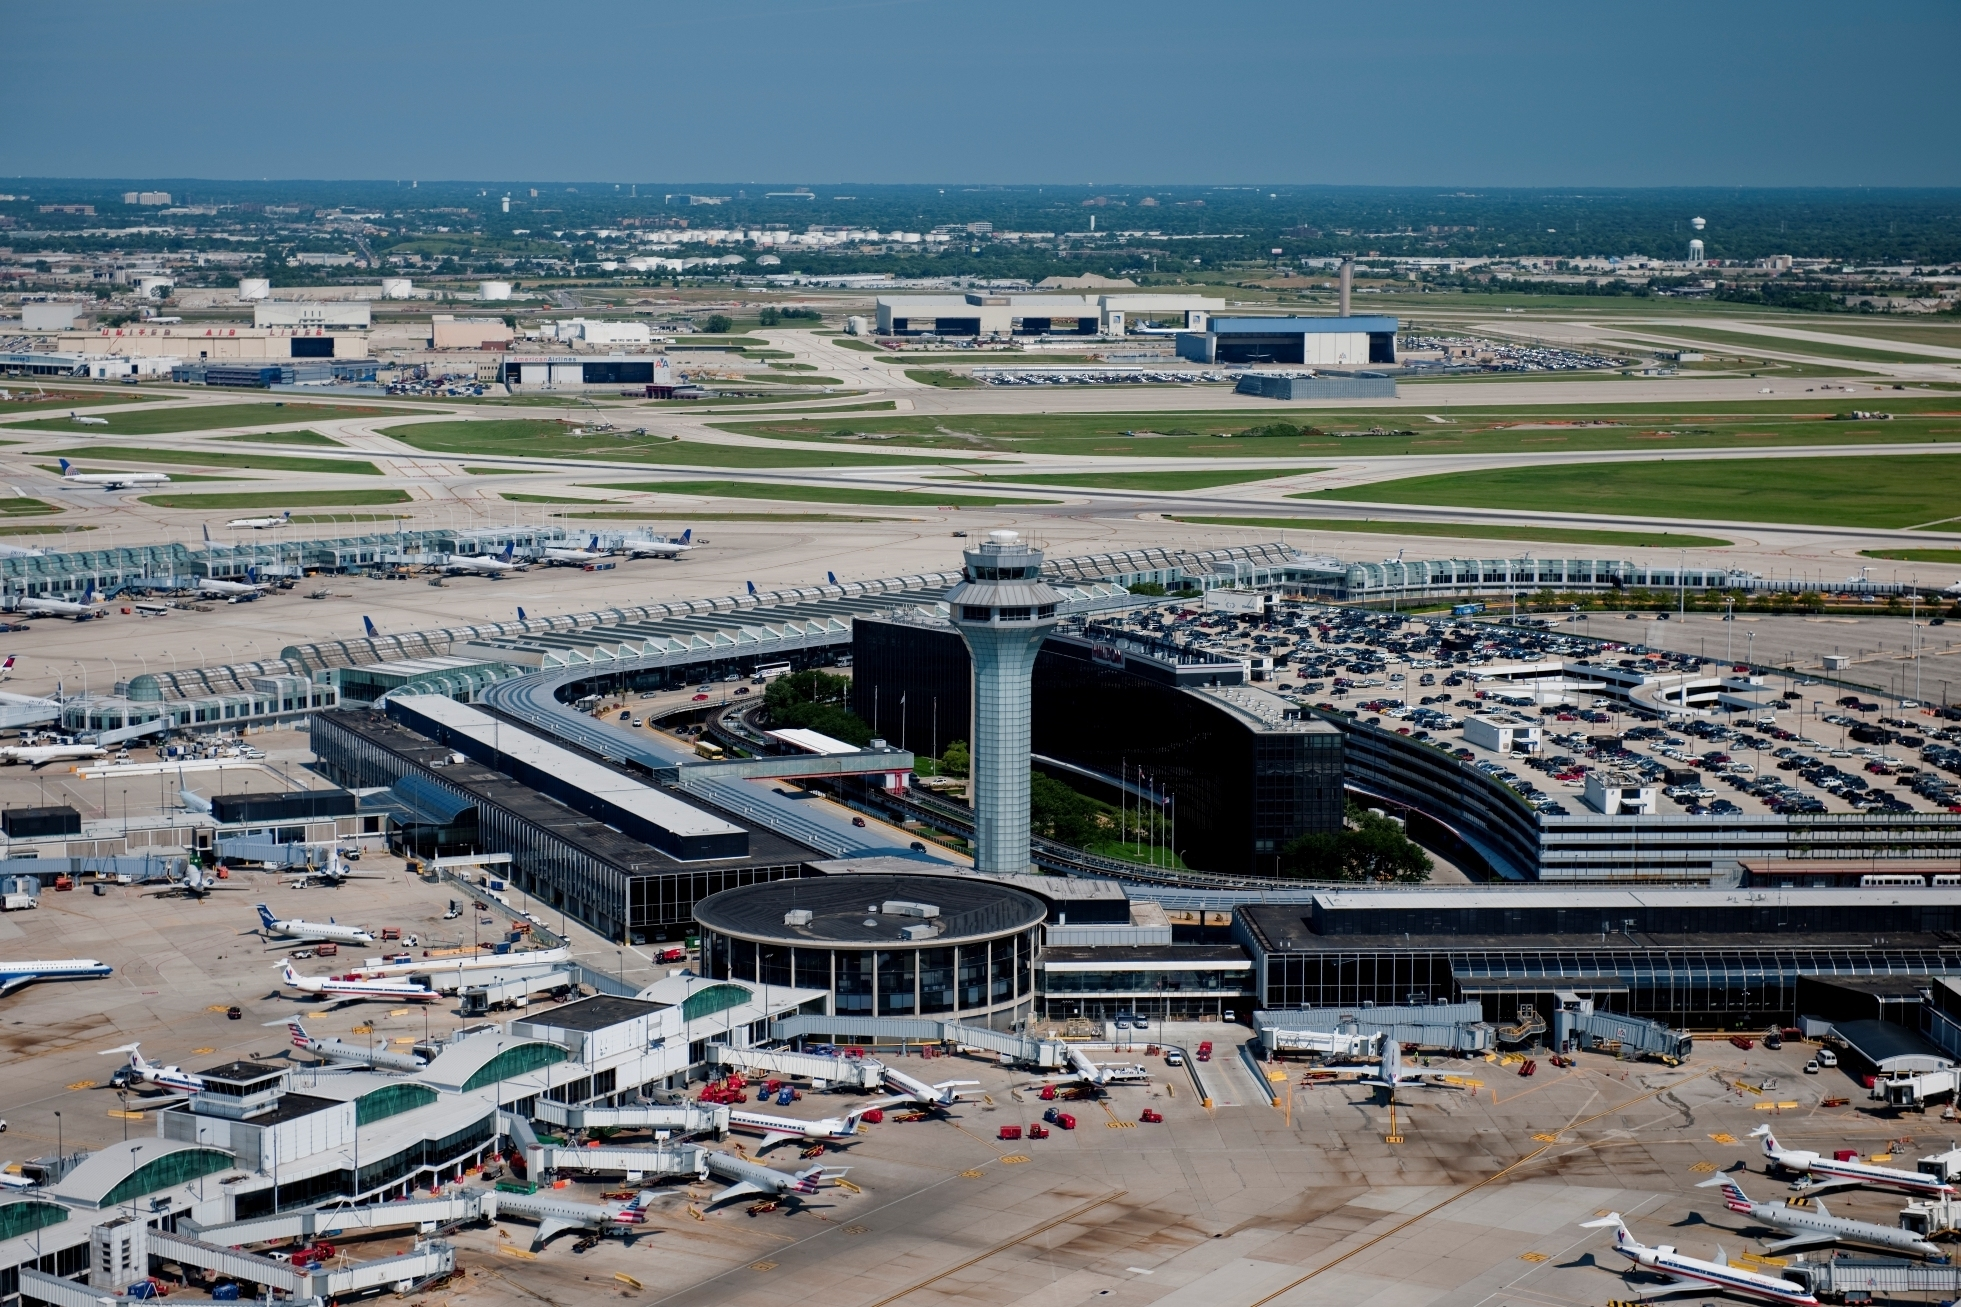 Ohare airport 2nd to atlantas hartsfield for worlds busiest worlds busiest airport title slips further from ohares grasp m4hsunfo